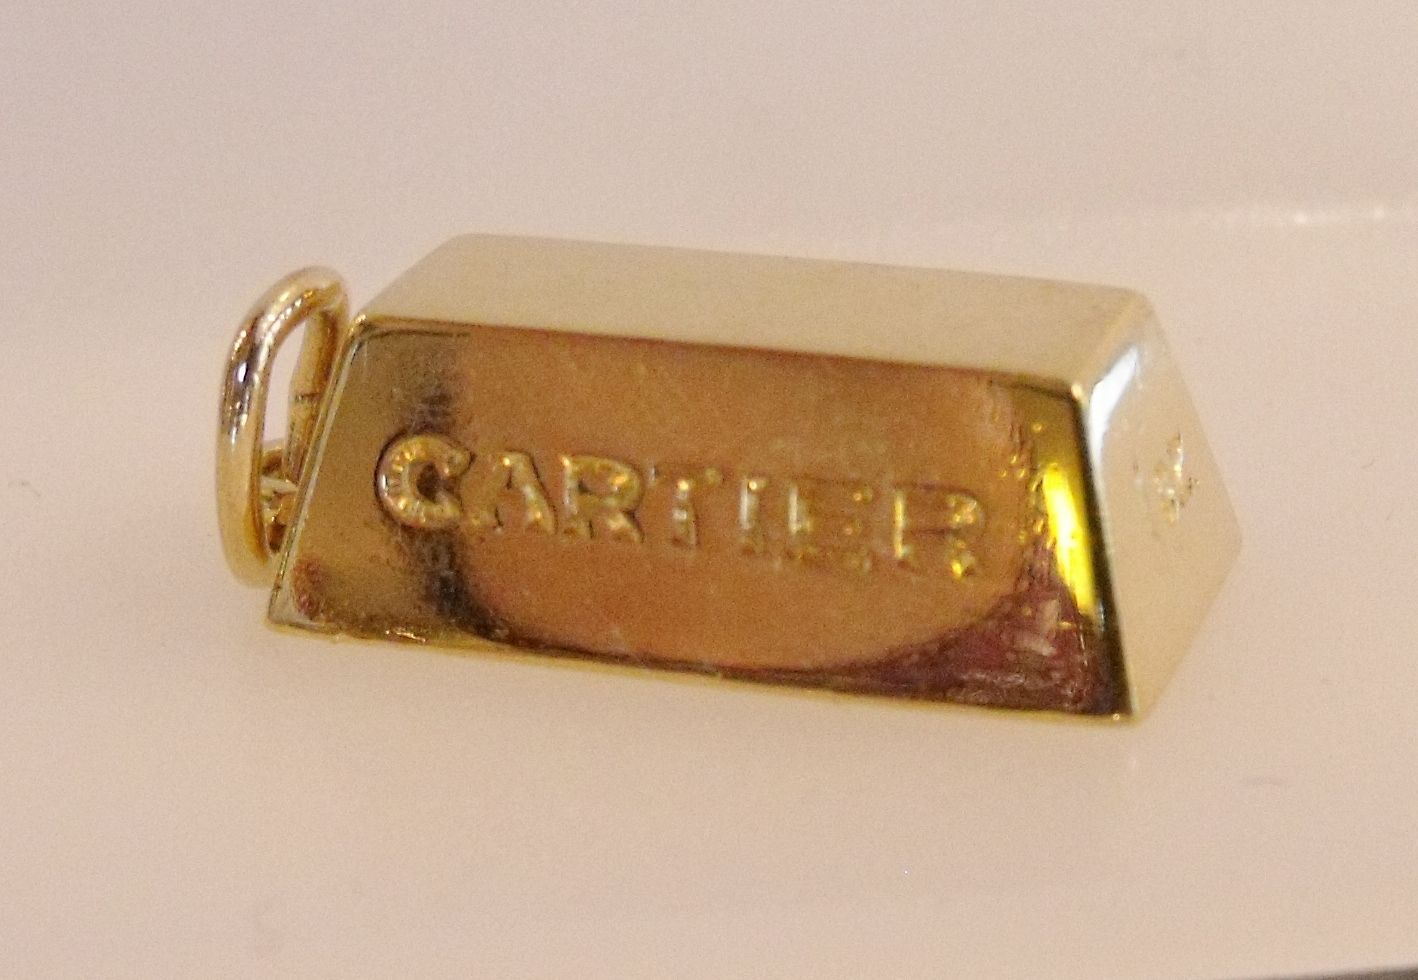 Rare Cartier 1 Oz 18k Yellow Gold Bar Charm Pendant 32 1gr Cartier Gold Vintage Fine Jewelry Gold Bar Necklace